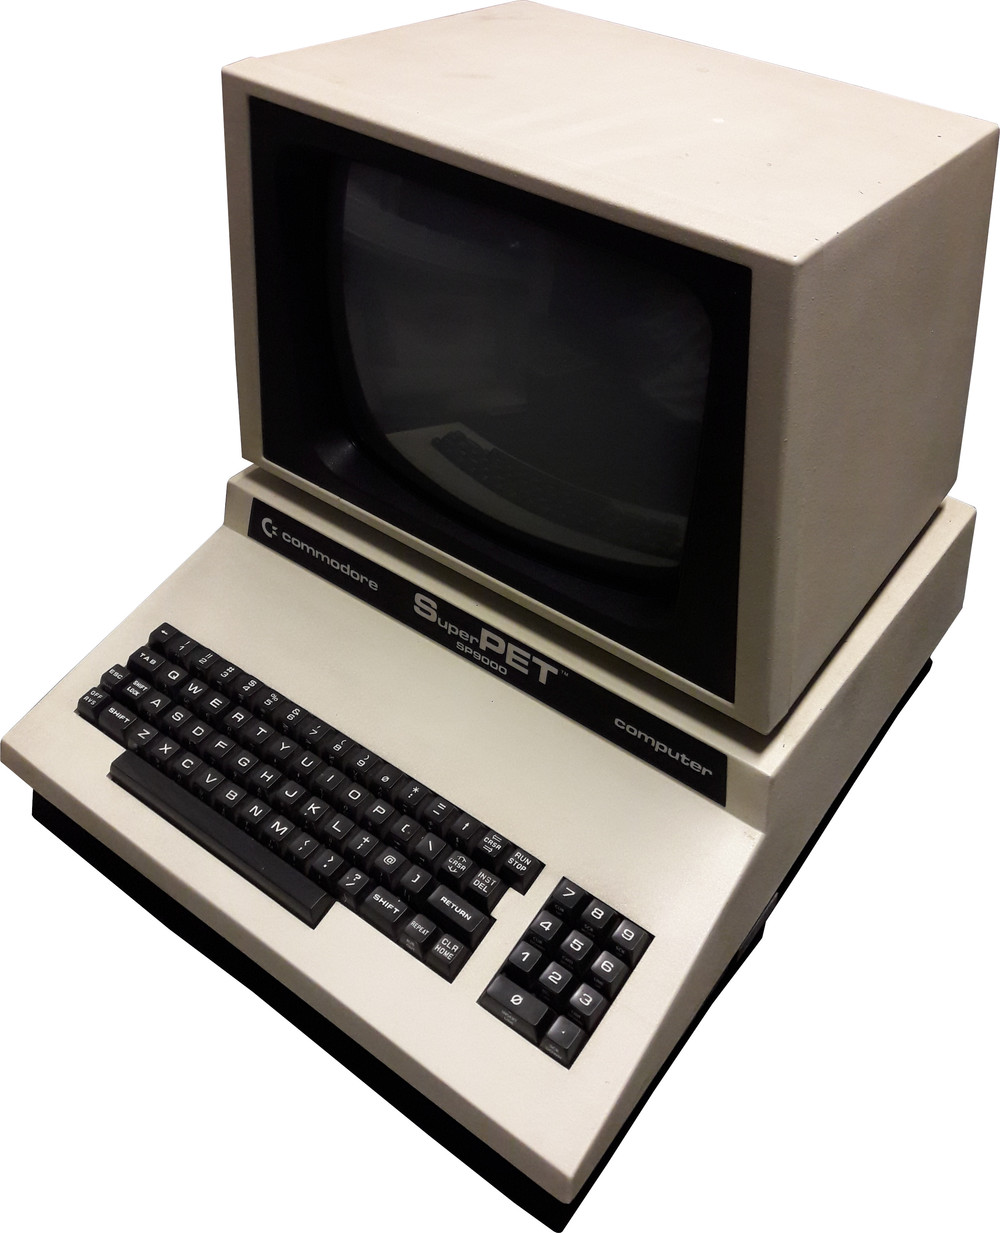 Commodore Super Pet